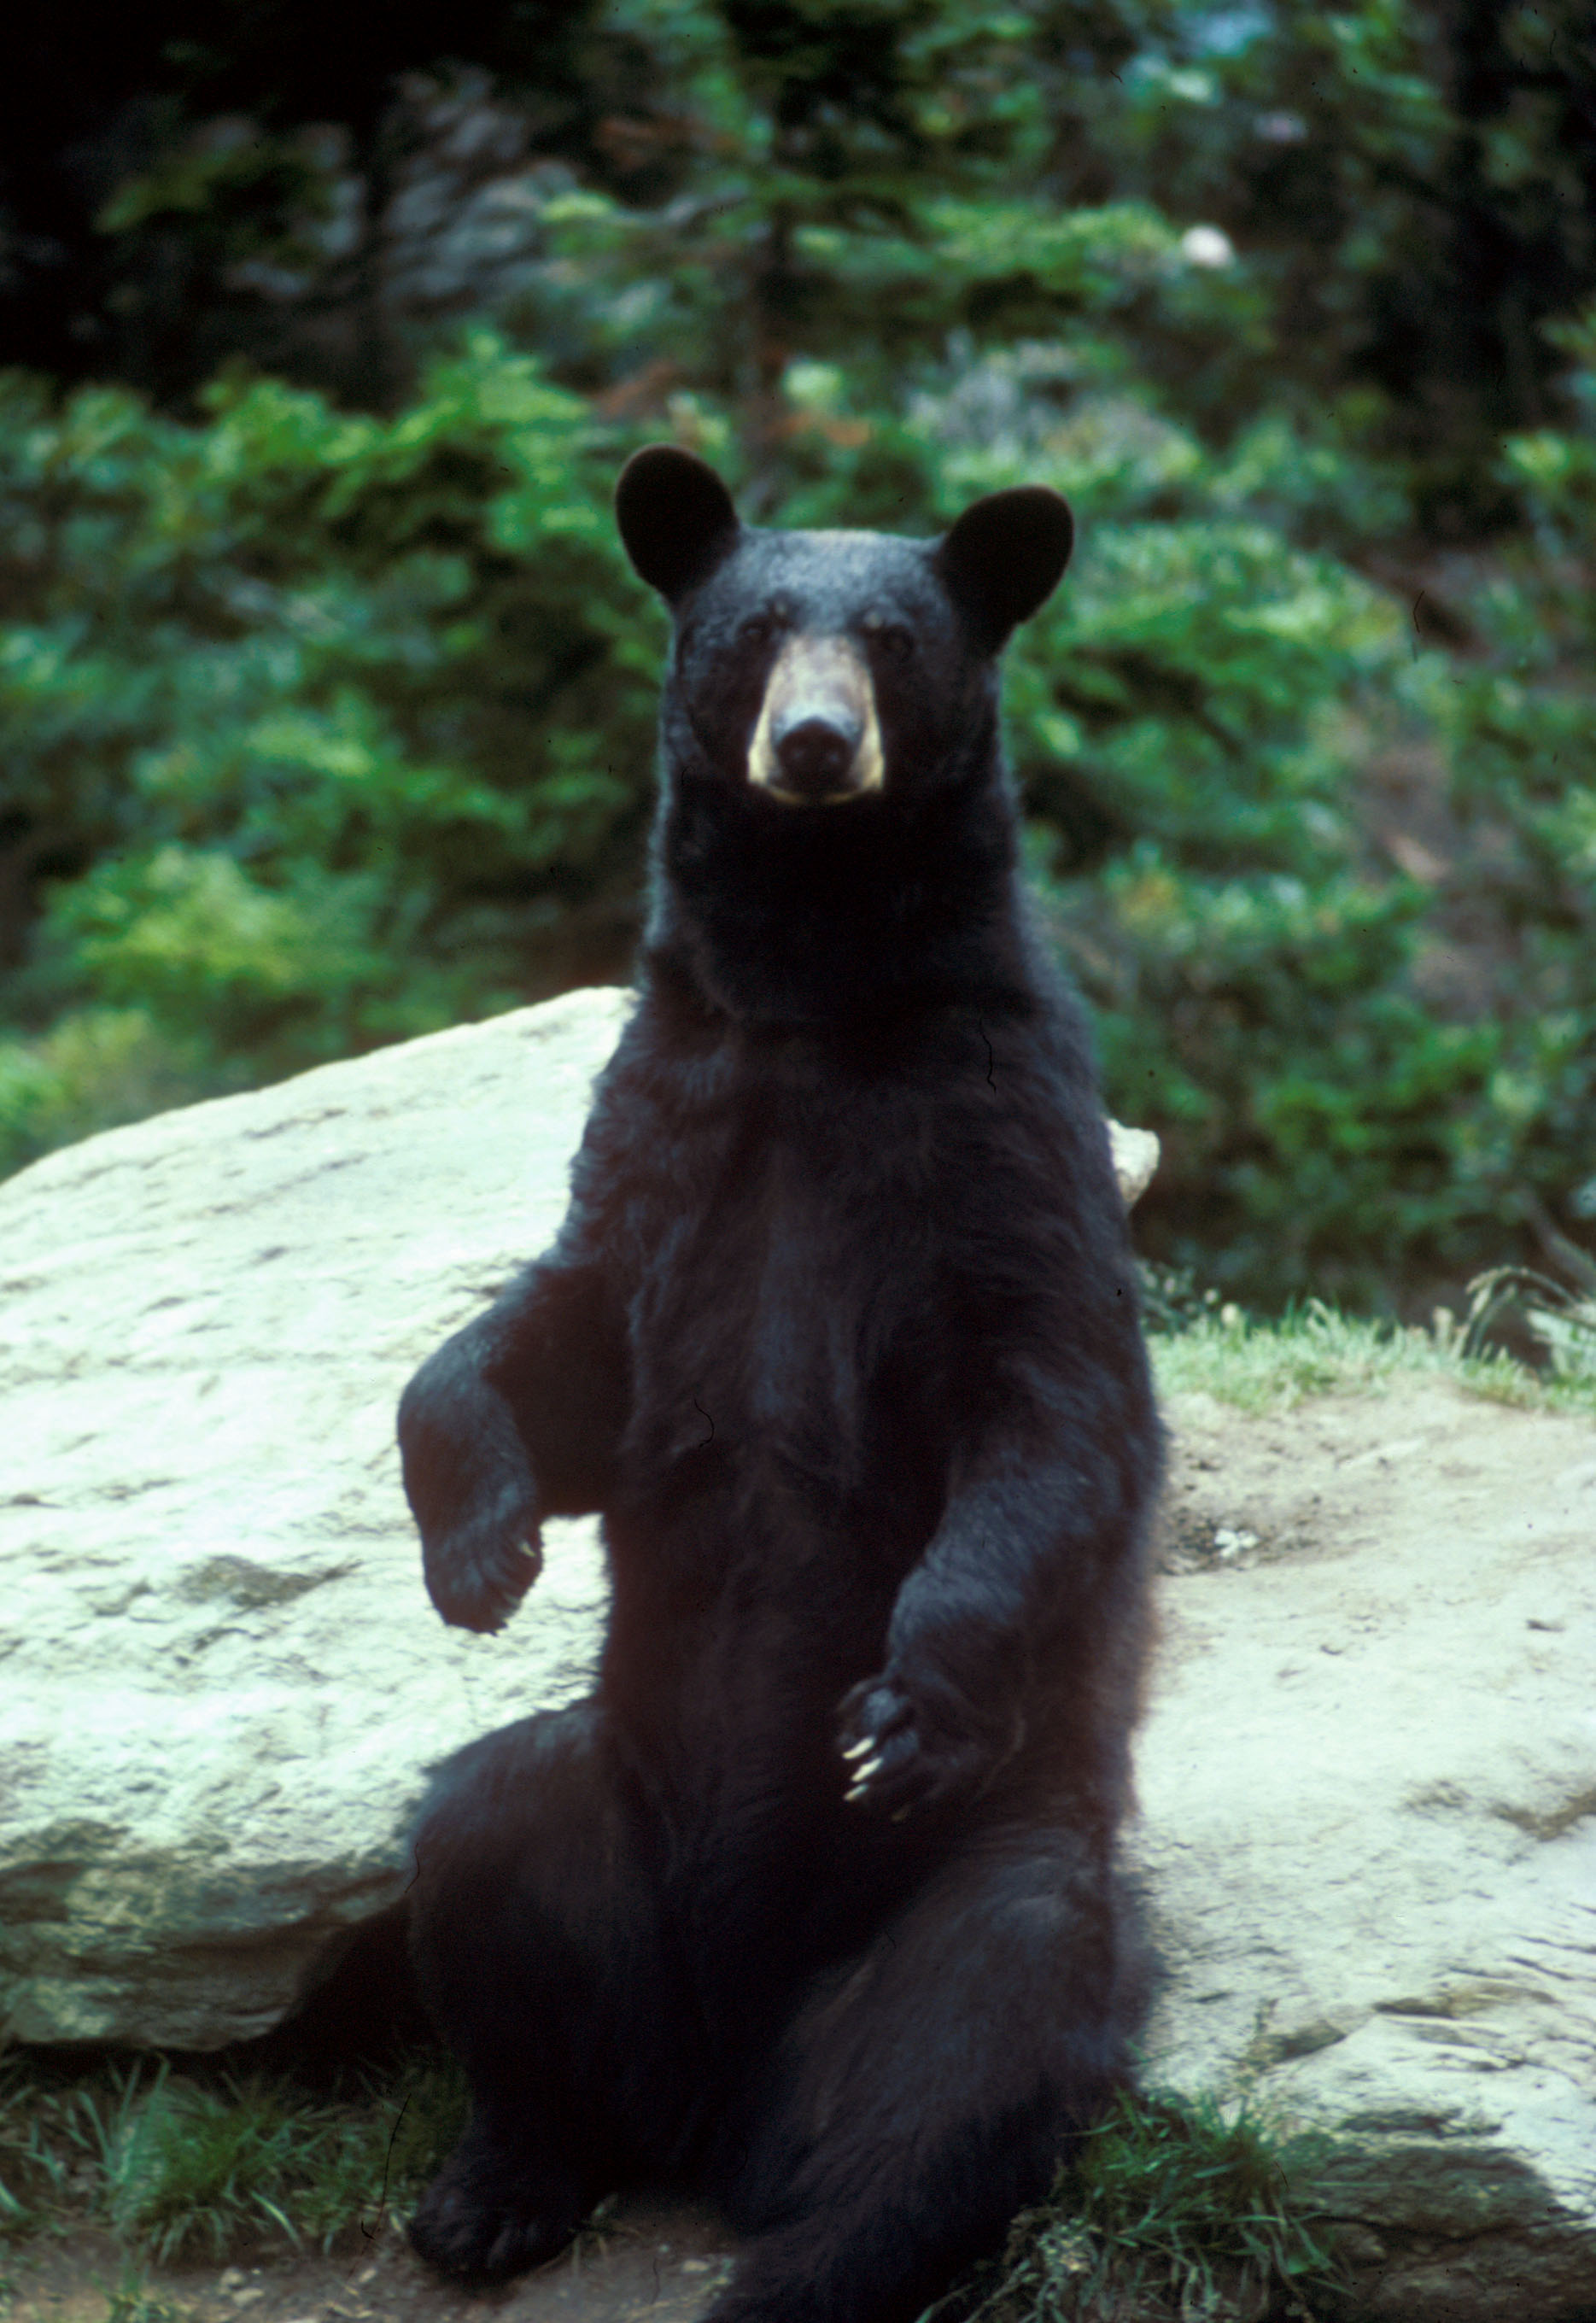 Bears are still seen in Western Loudoun, such as this young male at Banshee Reeks